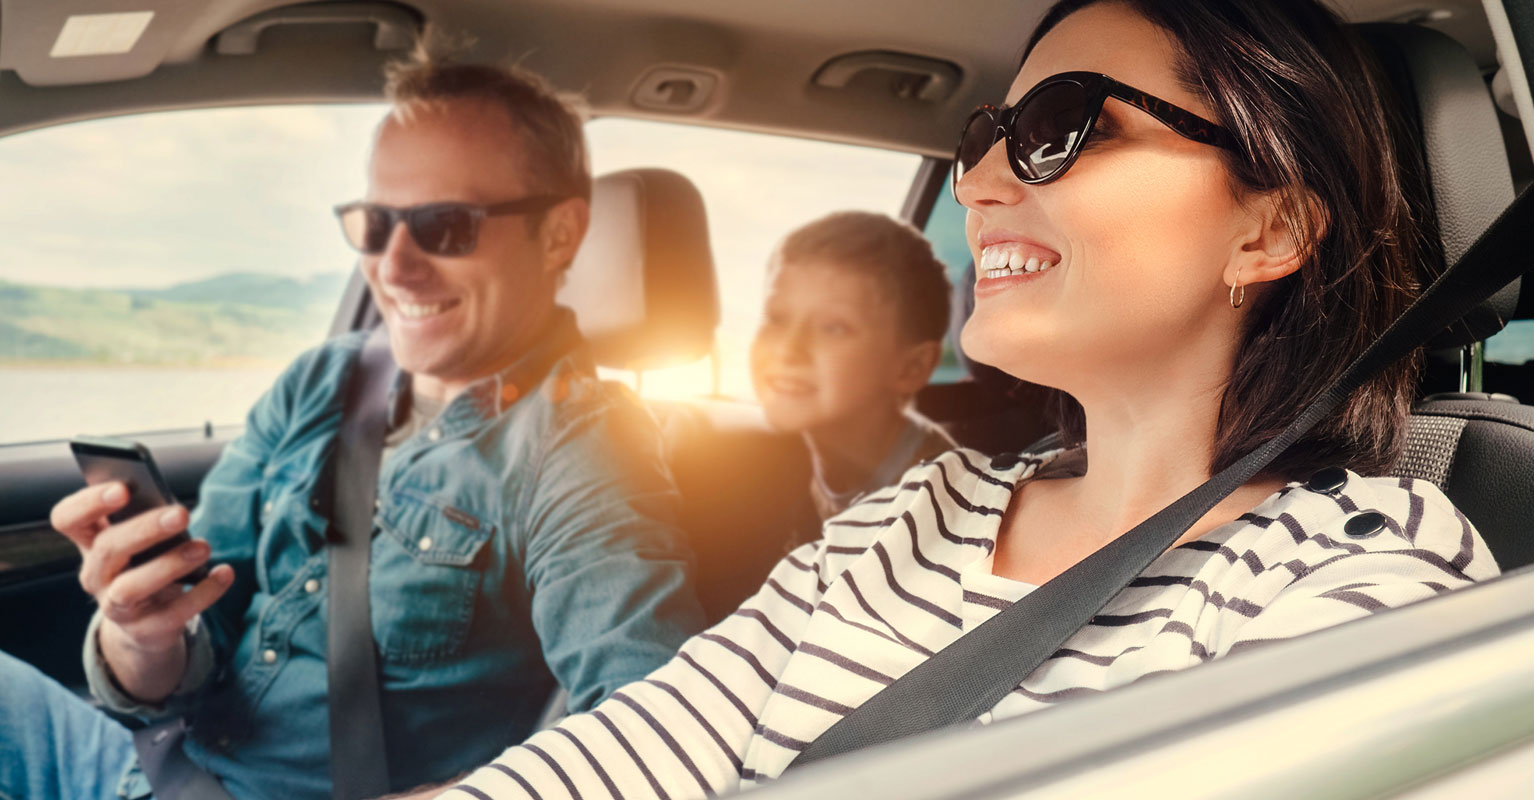 American Family Insurance Know Your Drive